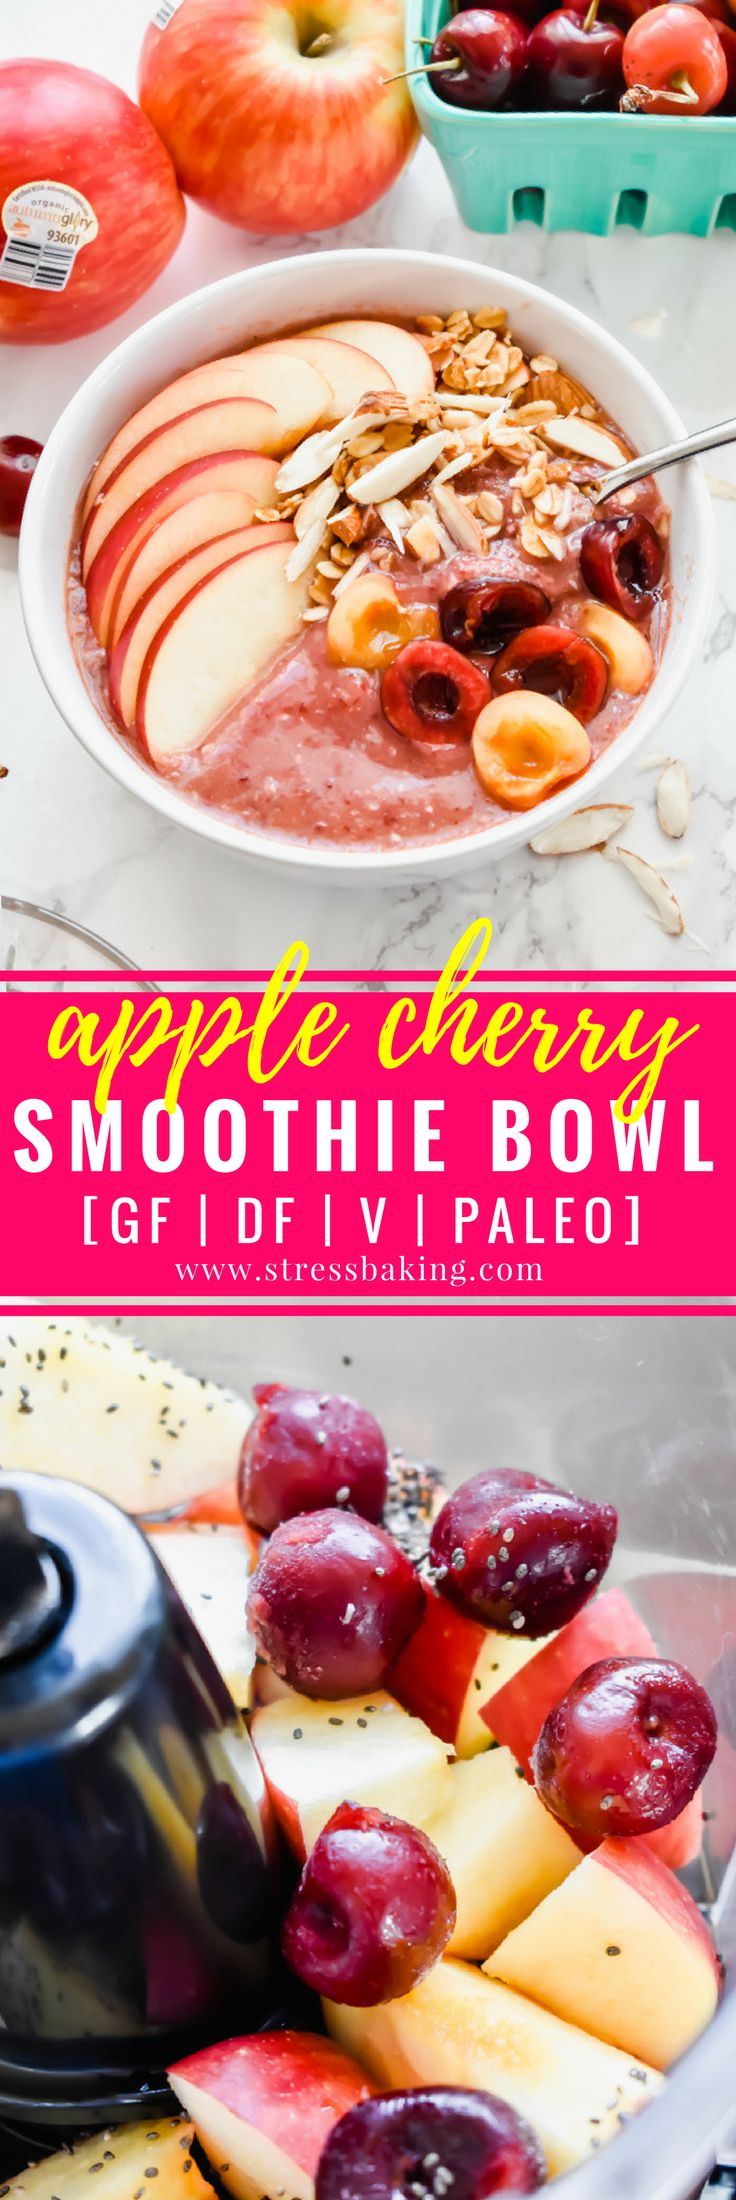 smoothie bowl | Posted By: DebbieNet.com